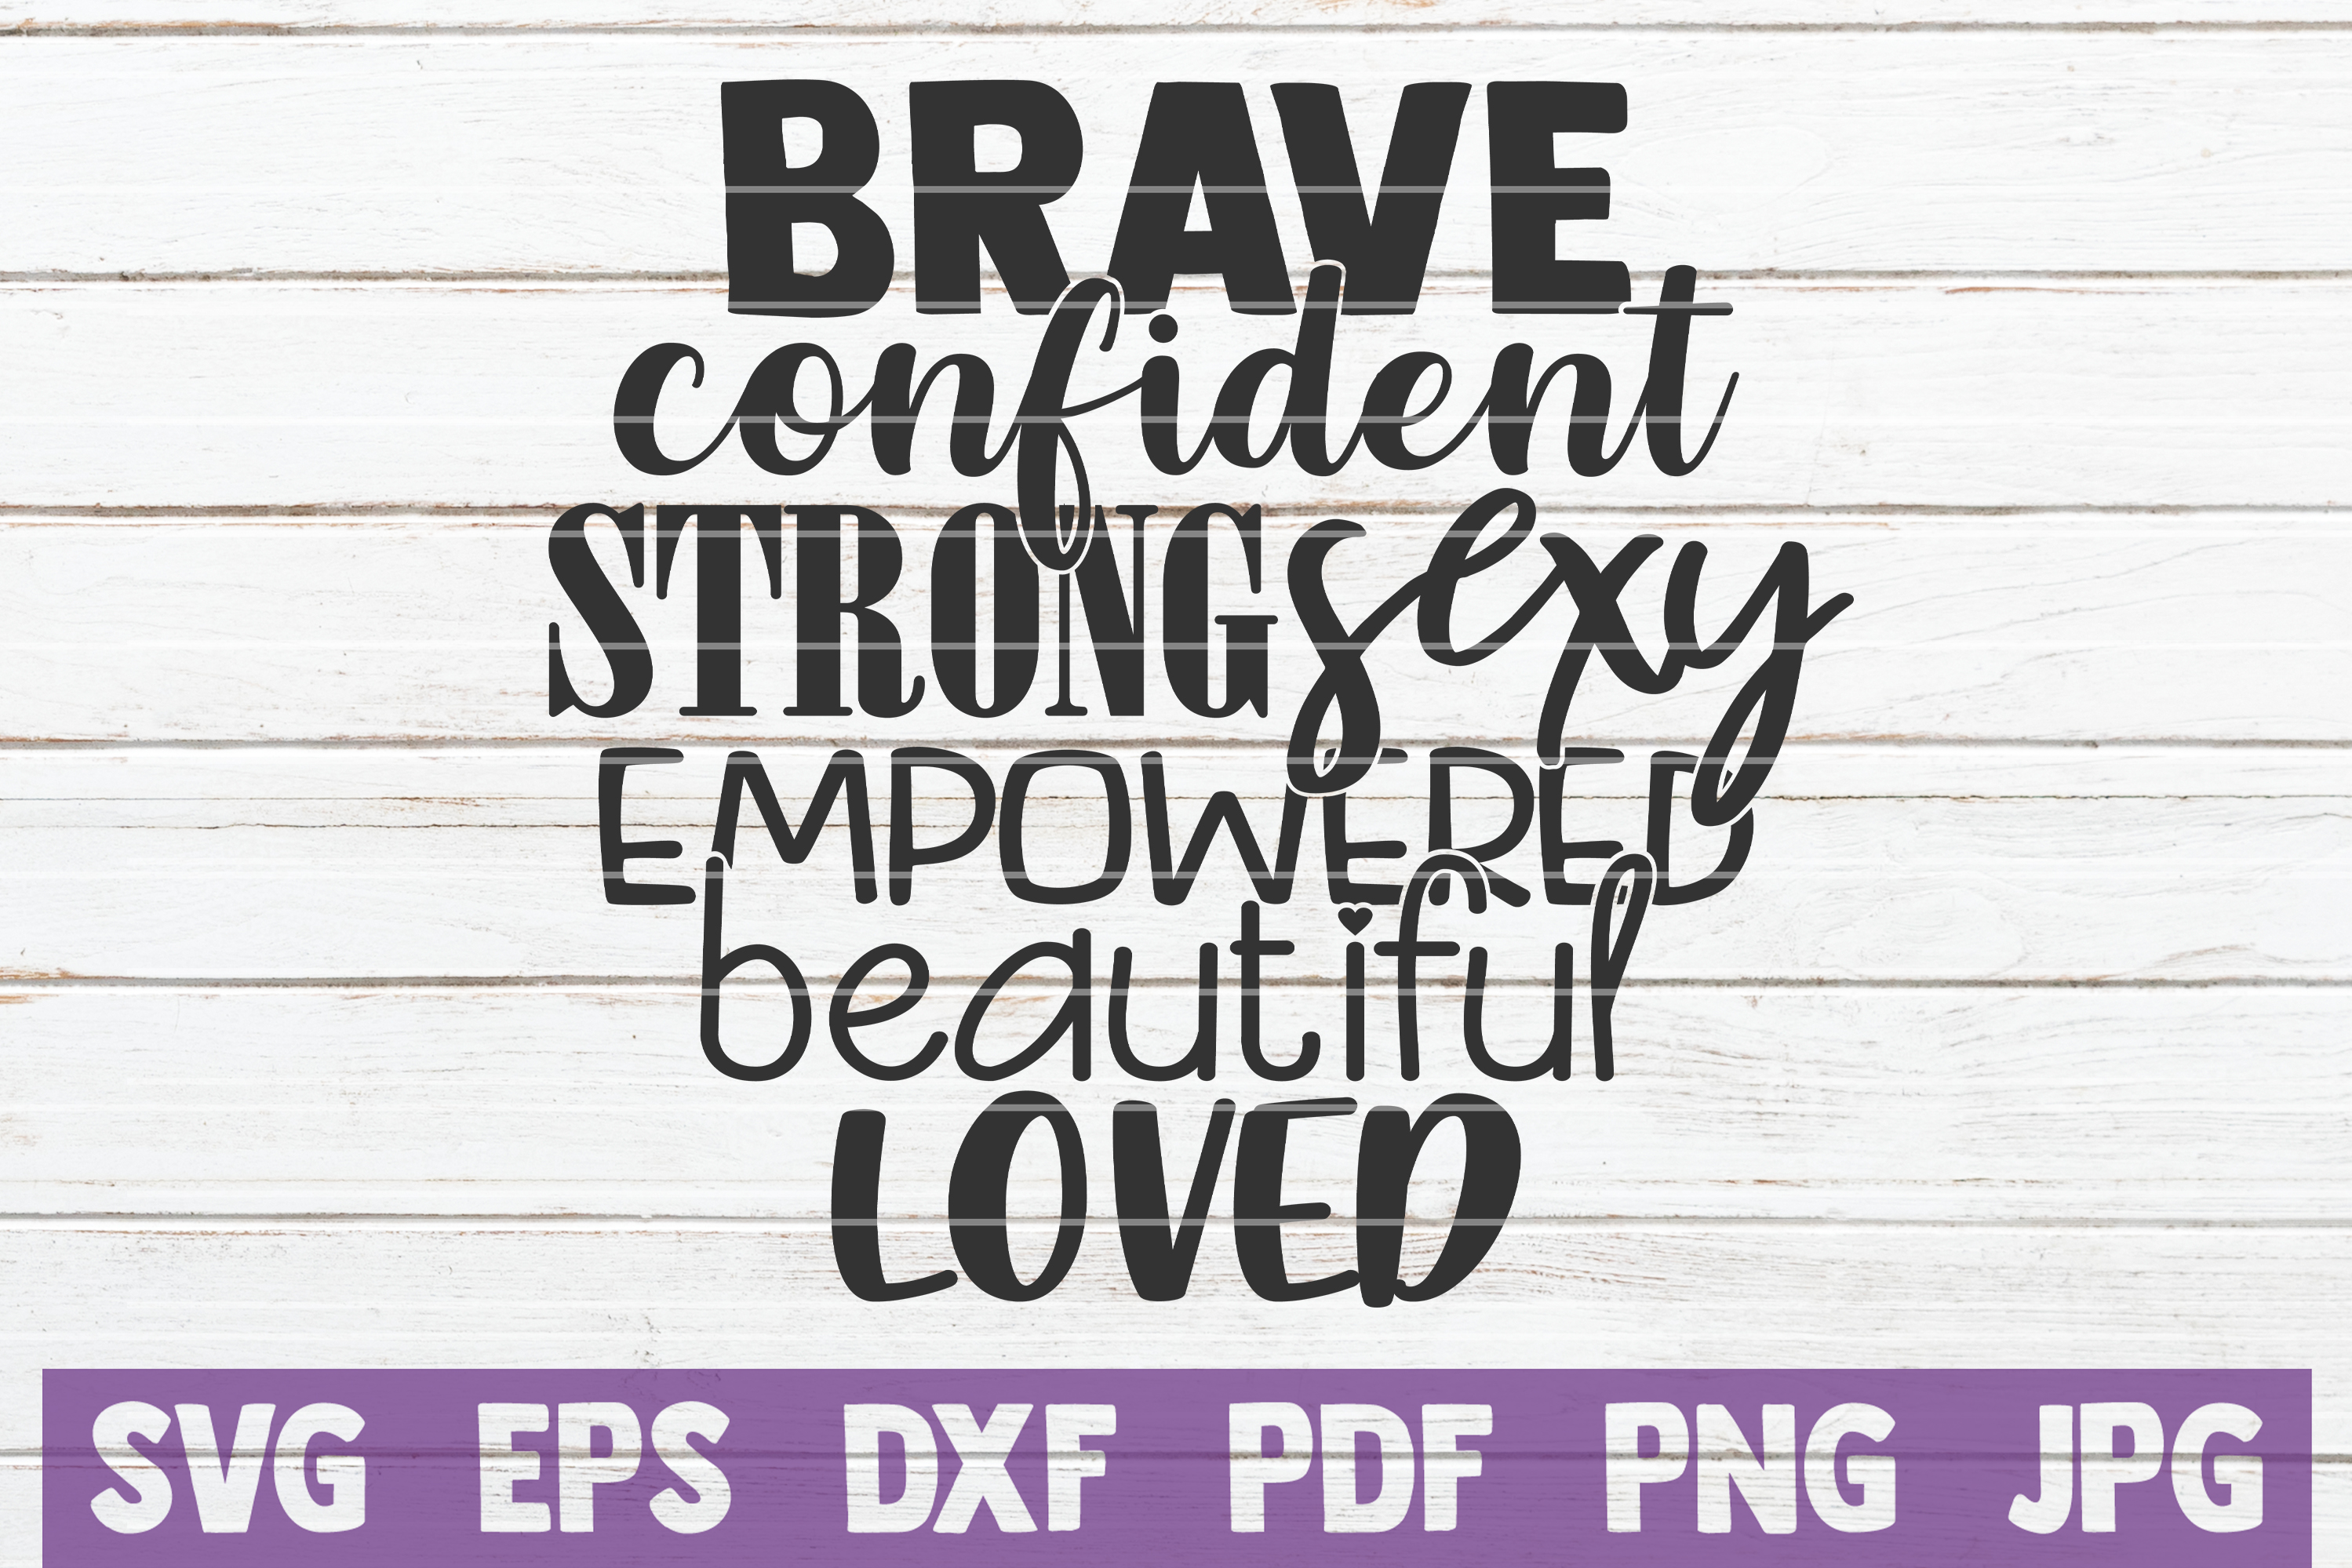 Brave Confident Strong Sexy Empowered Beautiful Loved example image 1